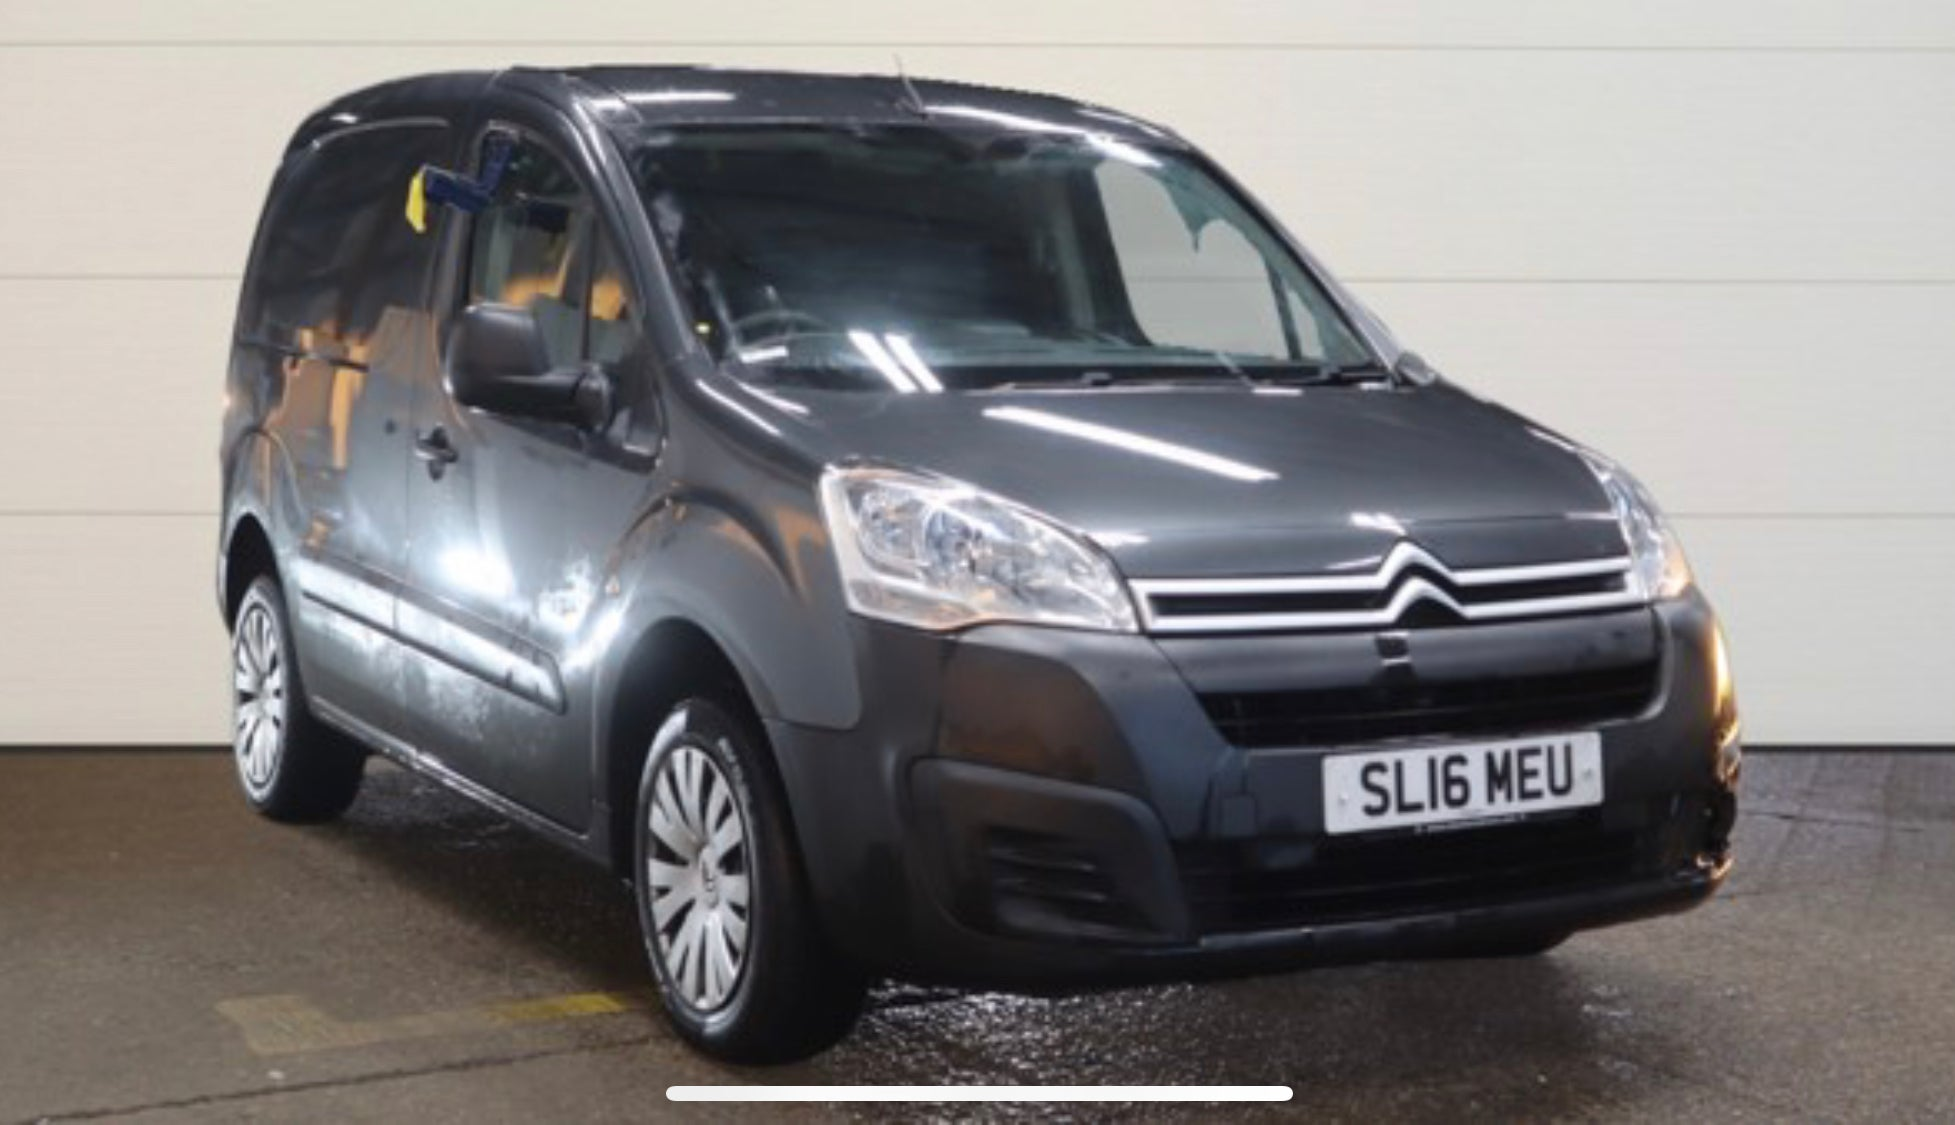 Citreon Berlingo 850 ENTERPRISE L1 HDI 1.6 Van Grey 2016